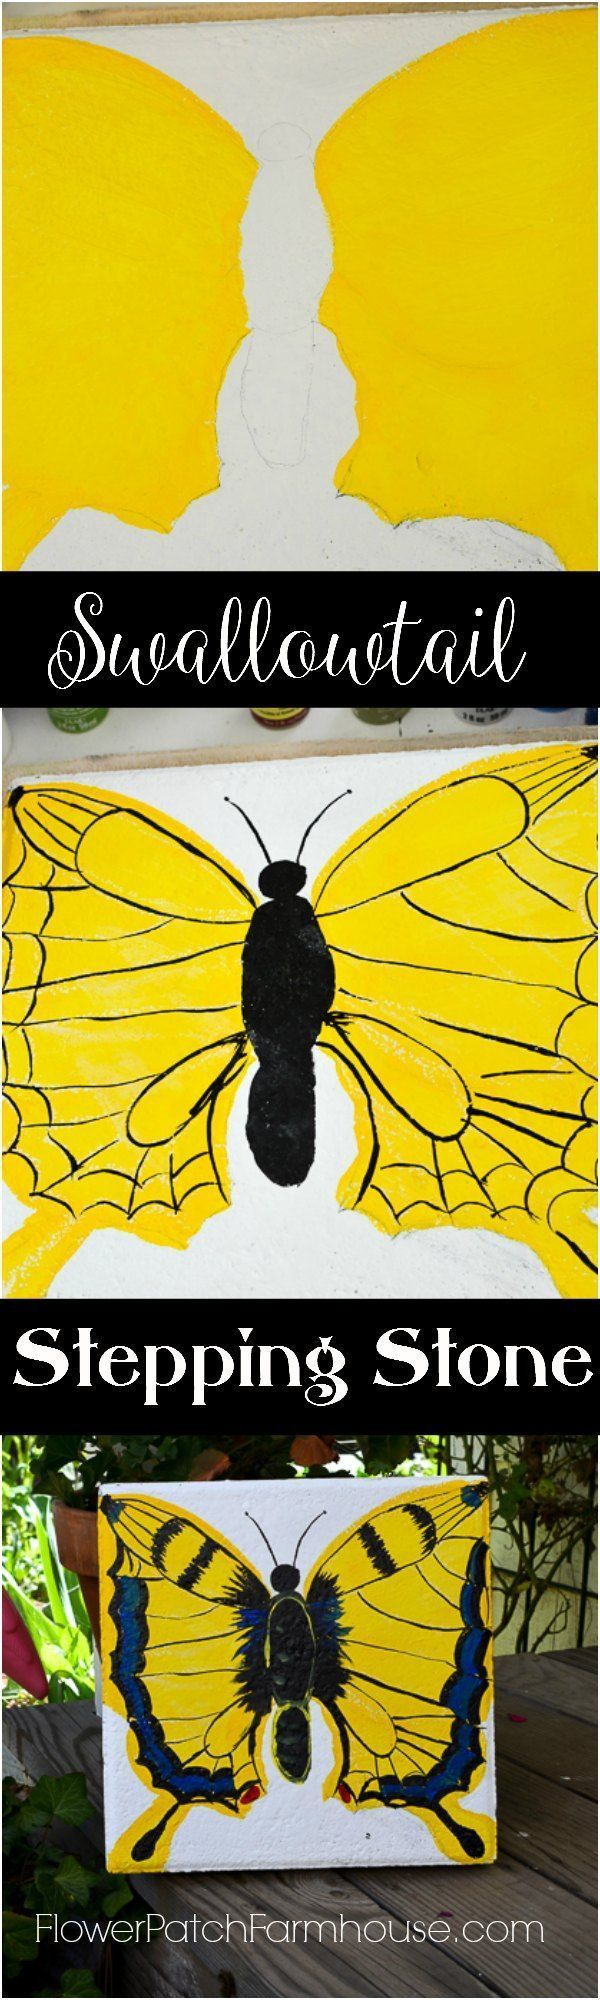 Turn a plain cement paver into Garden Art How to Paint a Swallowtail Butterfly Turn a plain cement paver into Garden Art How to Paint a Swallowtail Butterfly